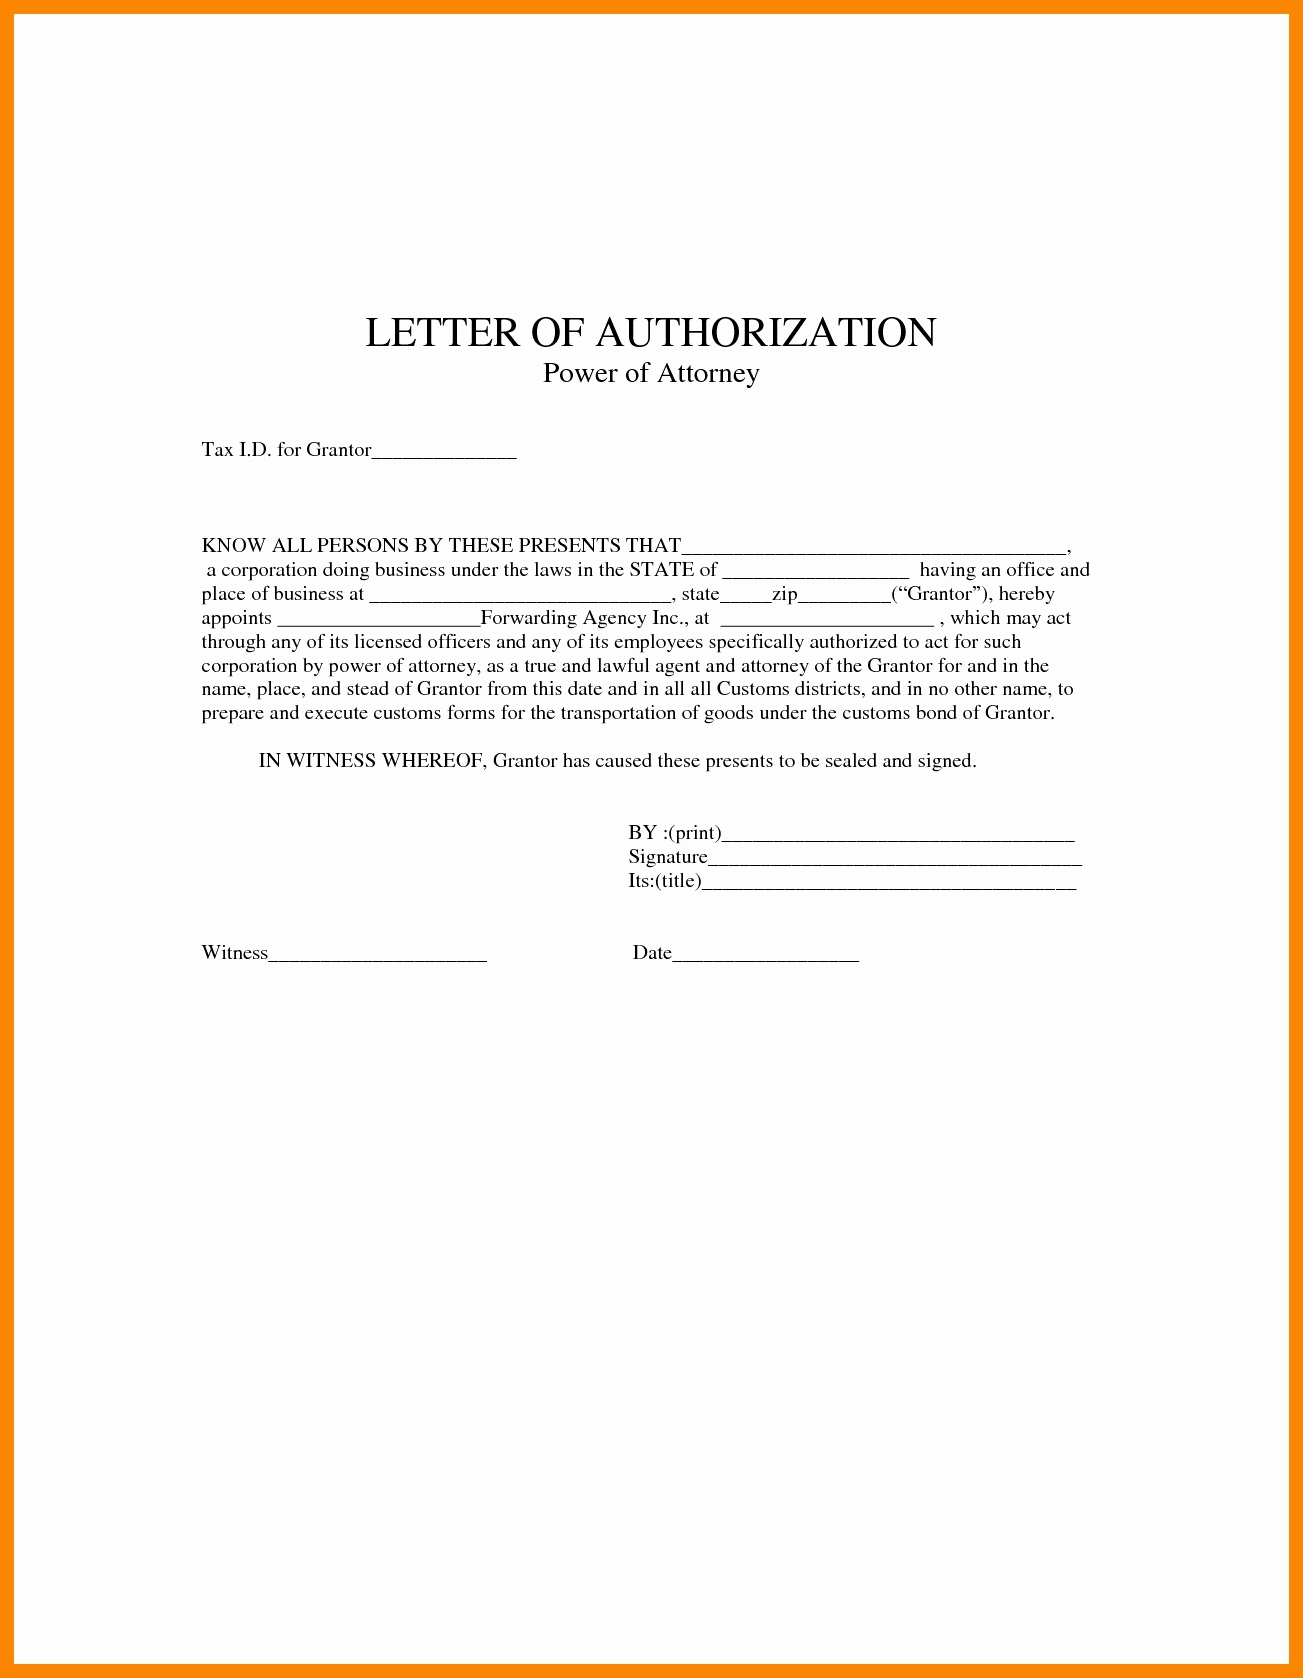 Power Of attorney Letter Template Free - Power Of attorney Letter Sample Acurnamedia